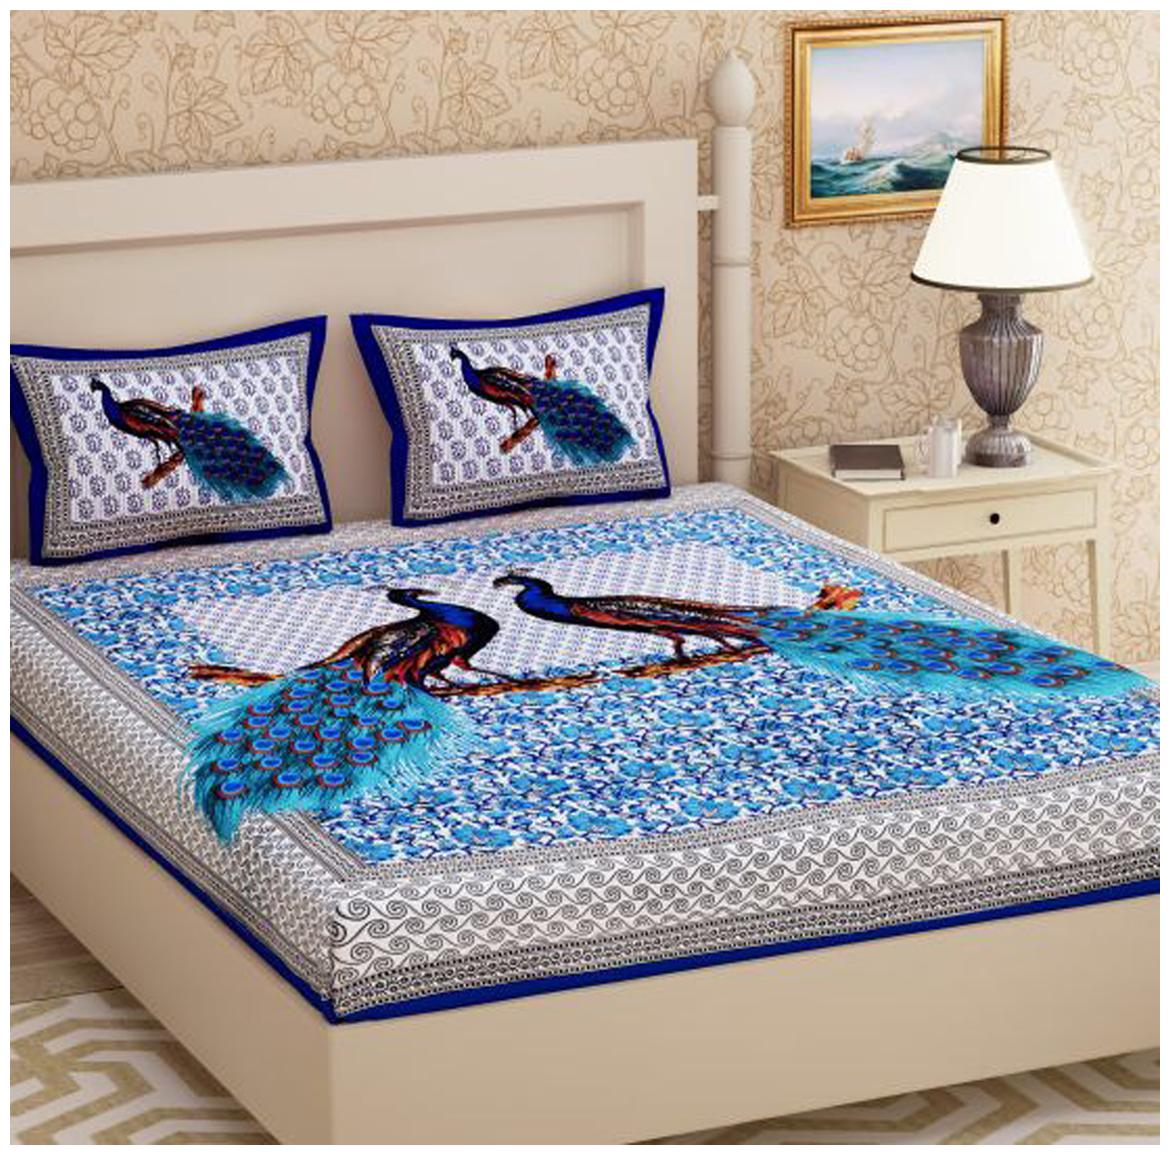 Sky Tex Non Fitted Cotton Printed Queen Blue 1 Bed Sheet With...